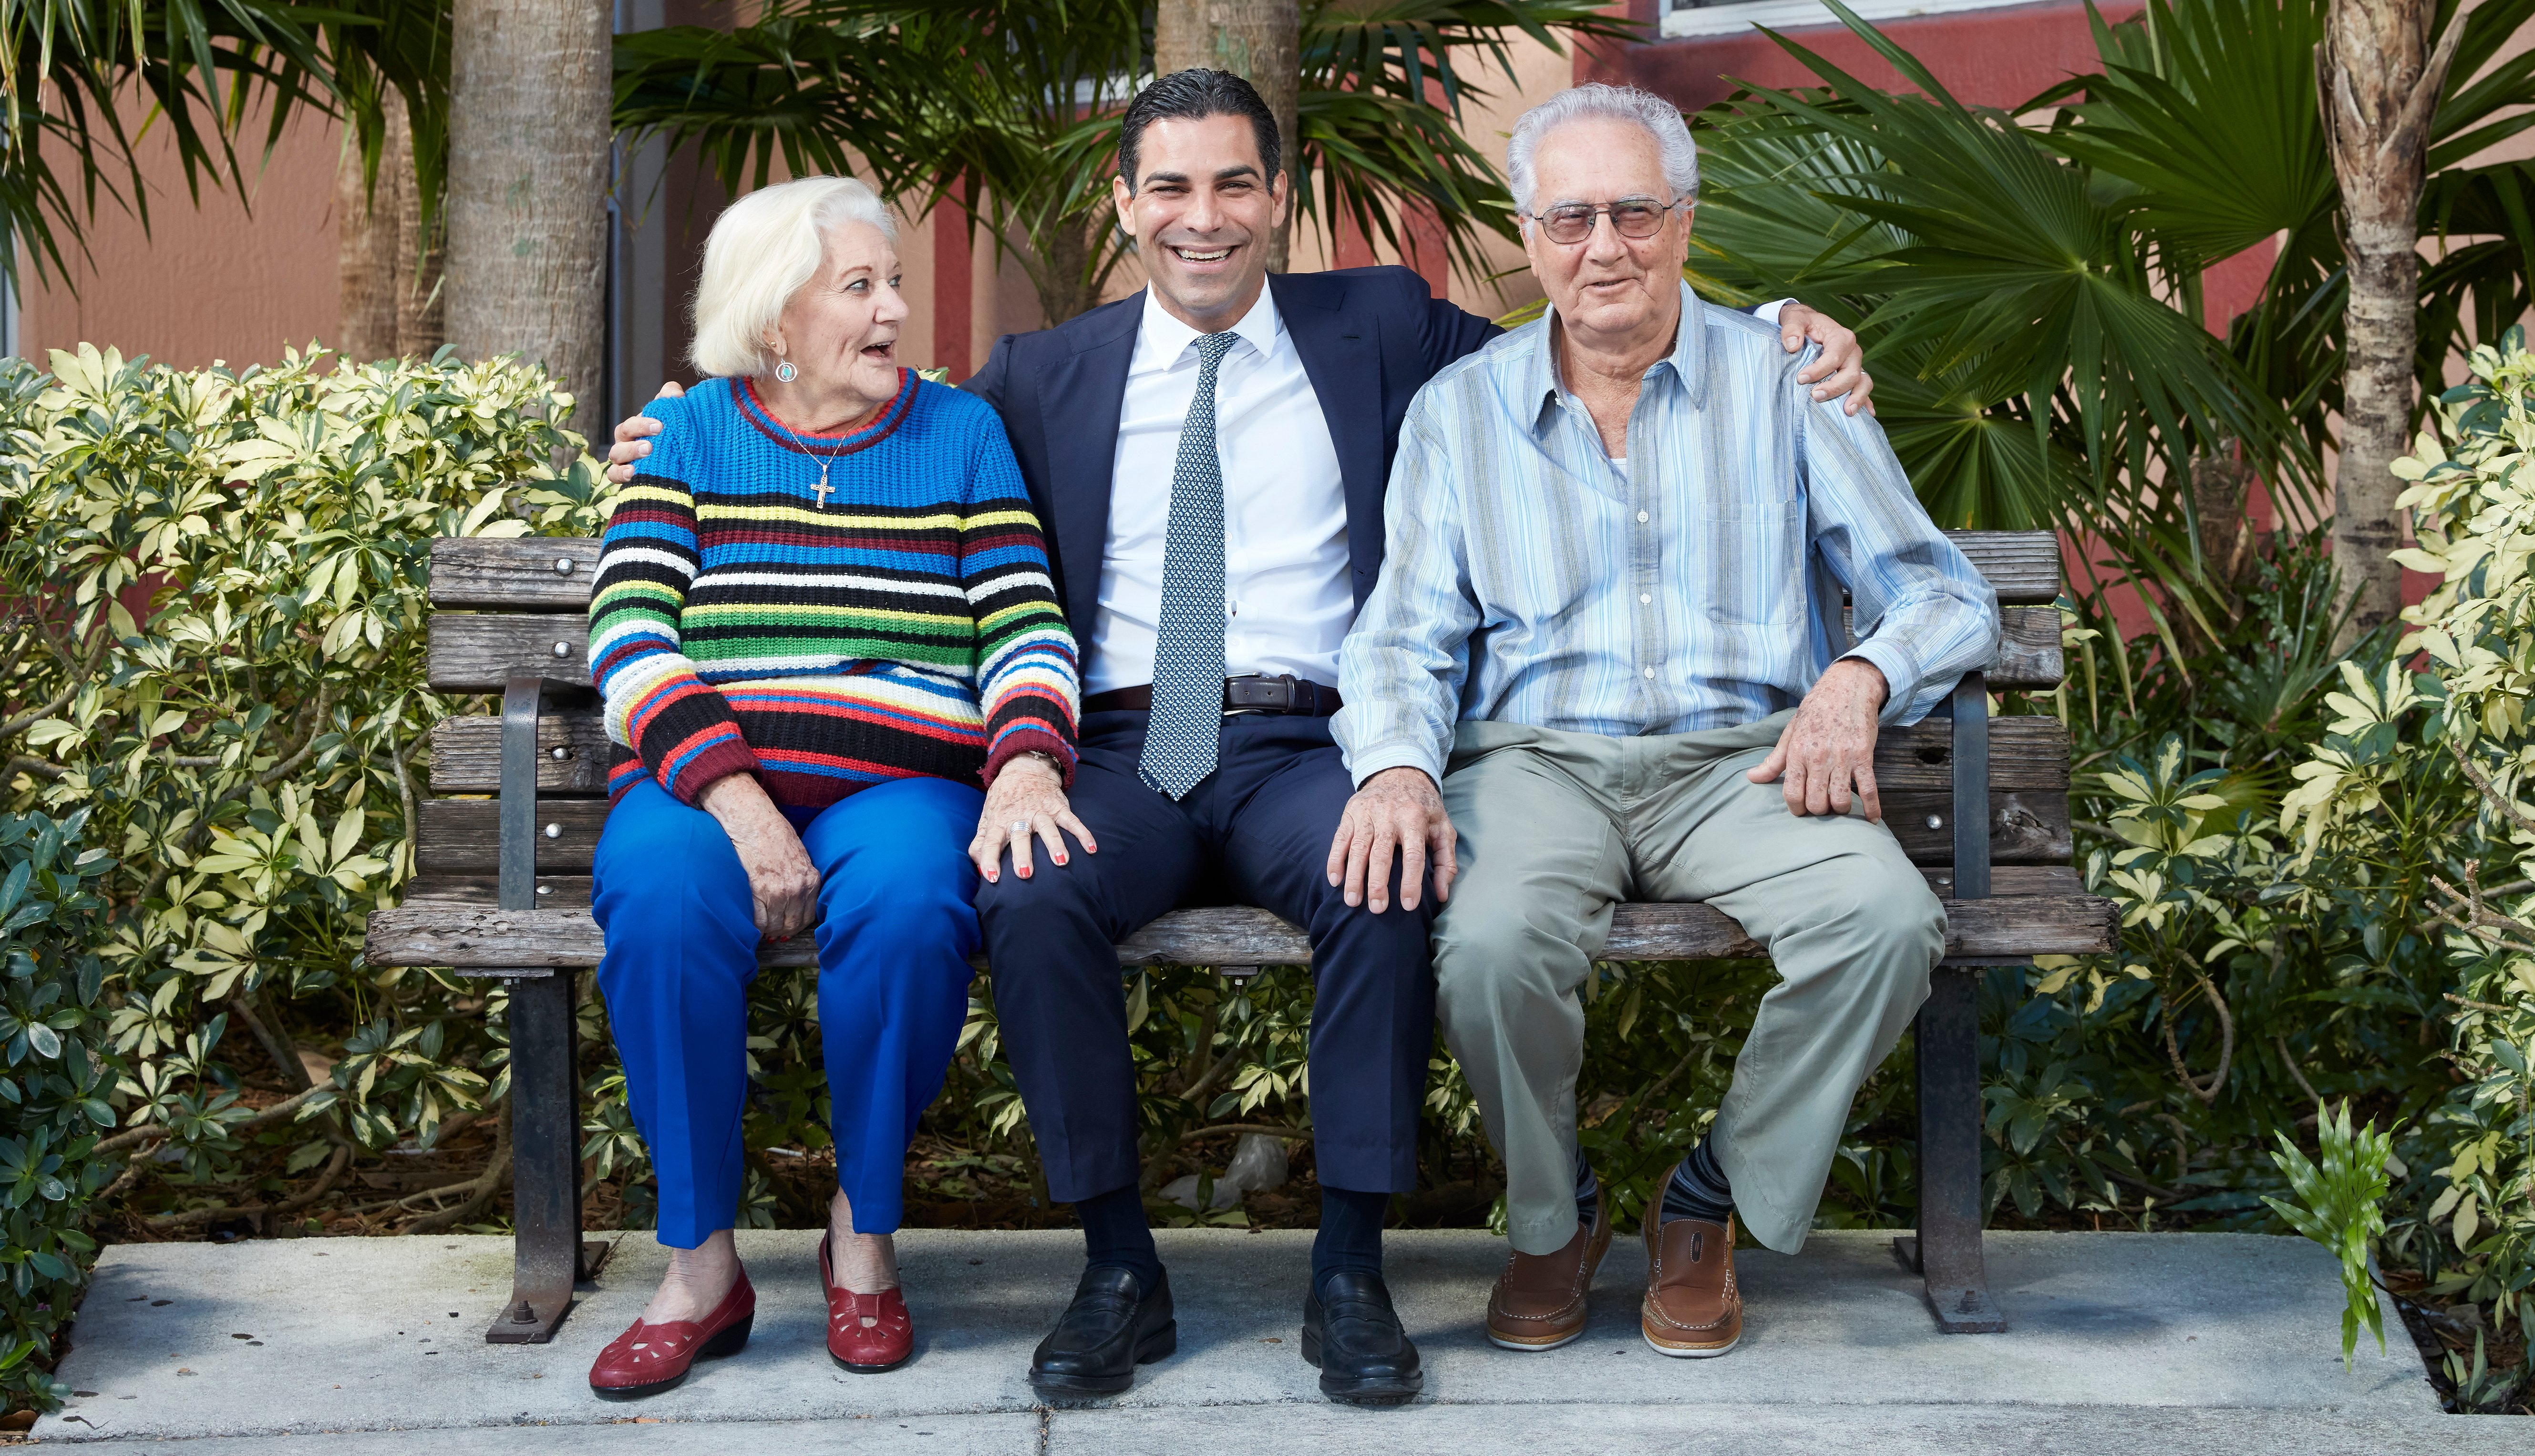 miami florida mayor francis suarez sits on a bench outside an apartment building with two residents